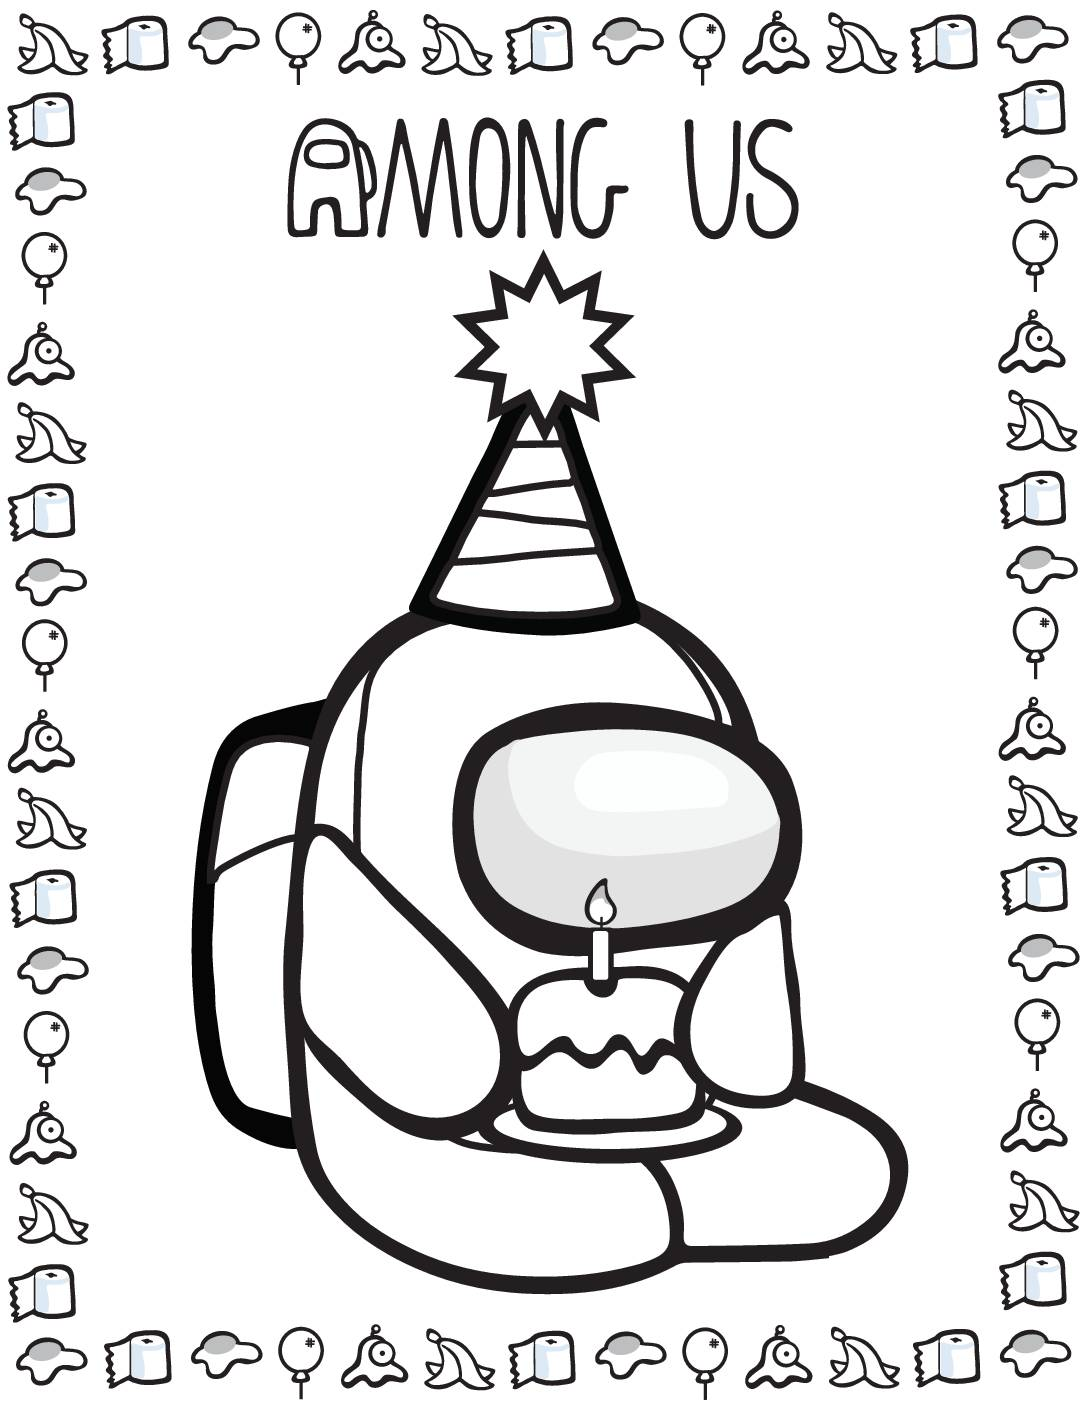 Coloring Page 3 Among US